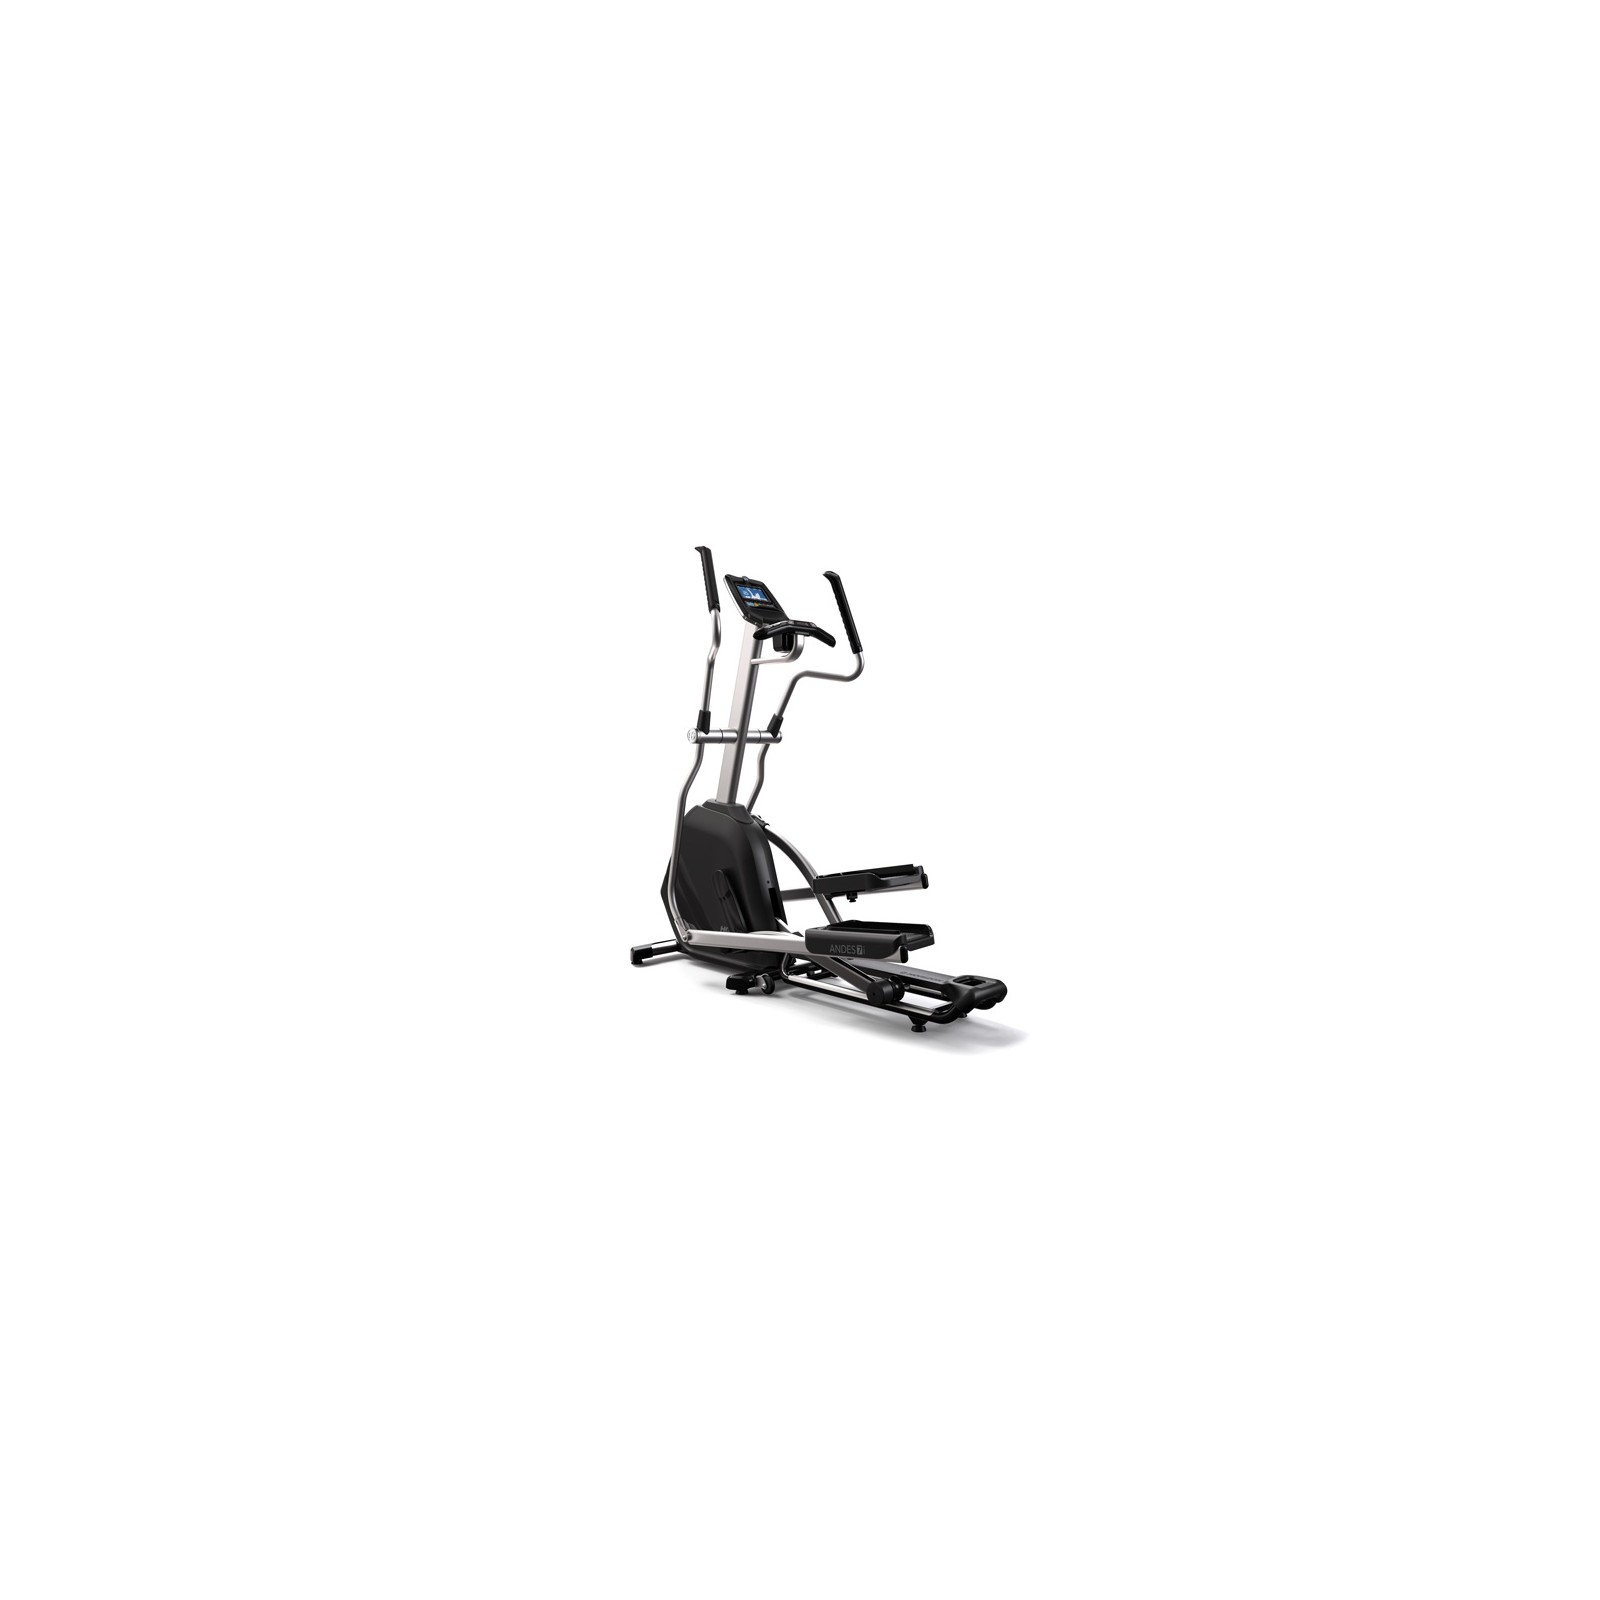 Horizon Elliptical Trainer: Horizon Elliptical Cross Trainer Andes 7i Viewfit Buy With